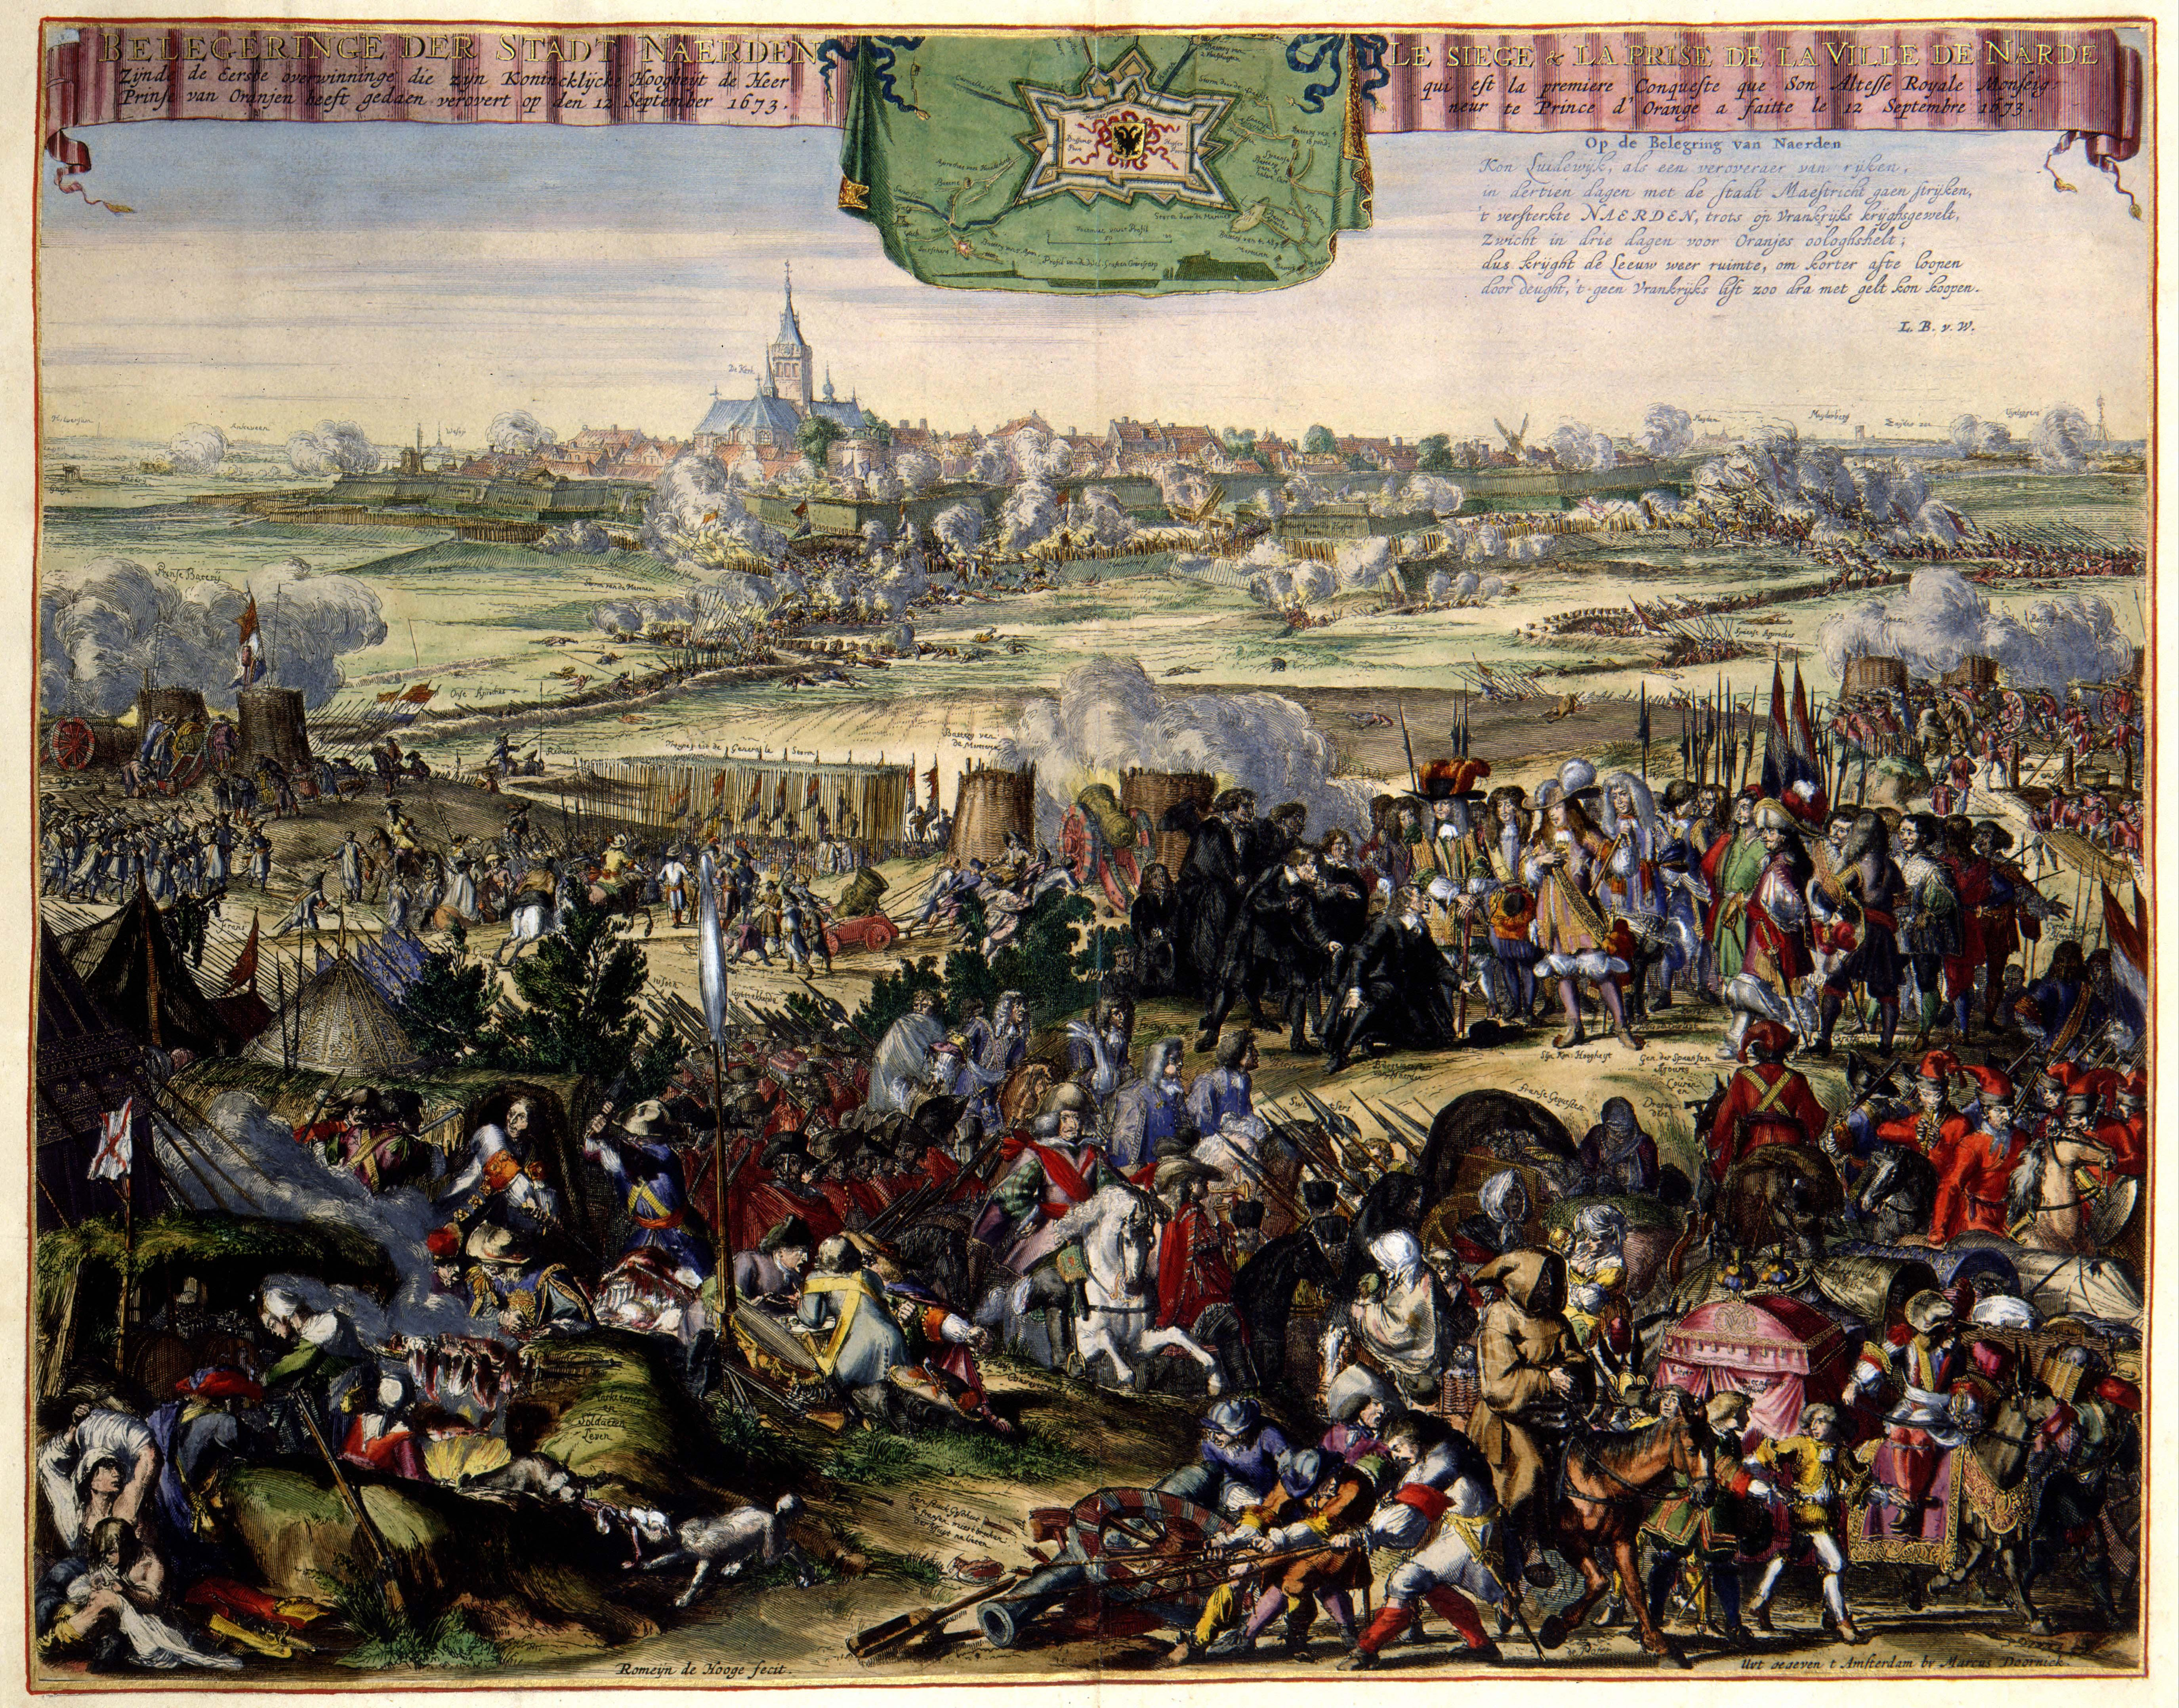 File:Recapture of Naarden by William III in 1673 -Belegeringe der Stadt  Naerden (